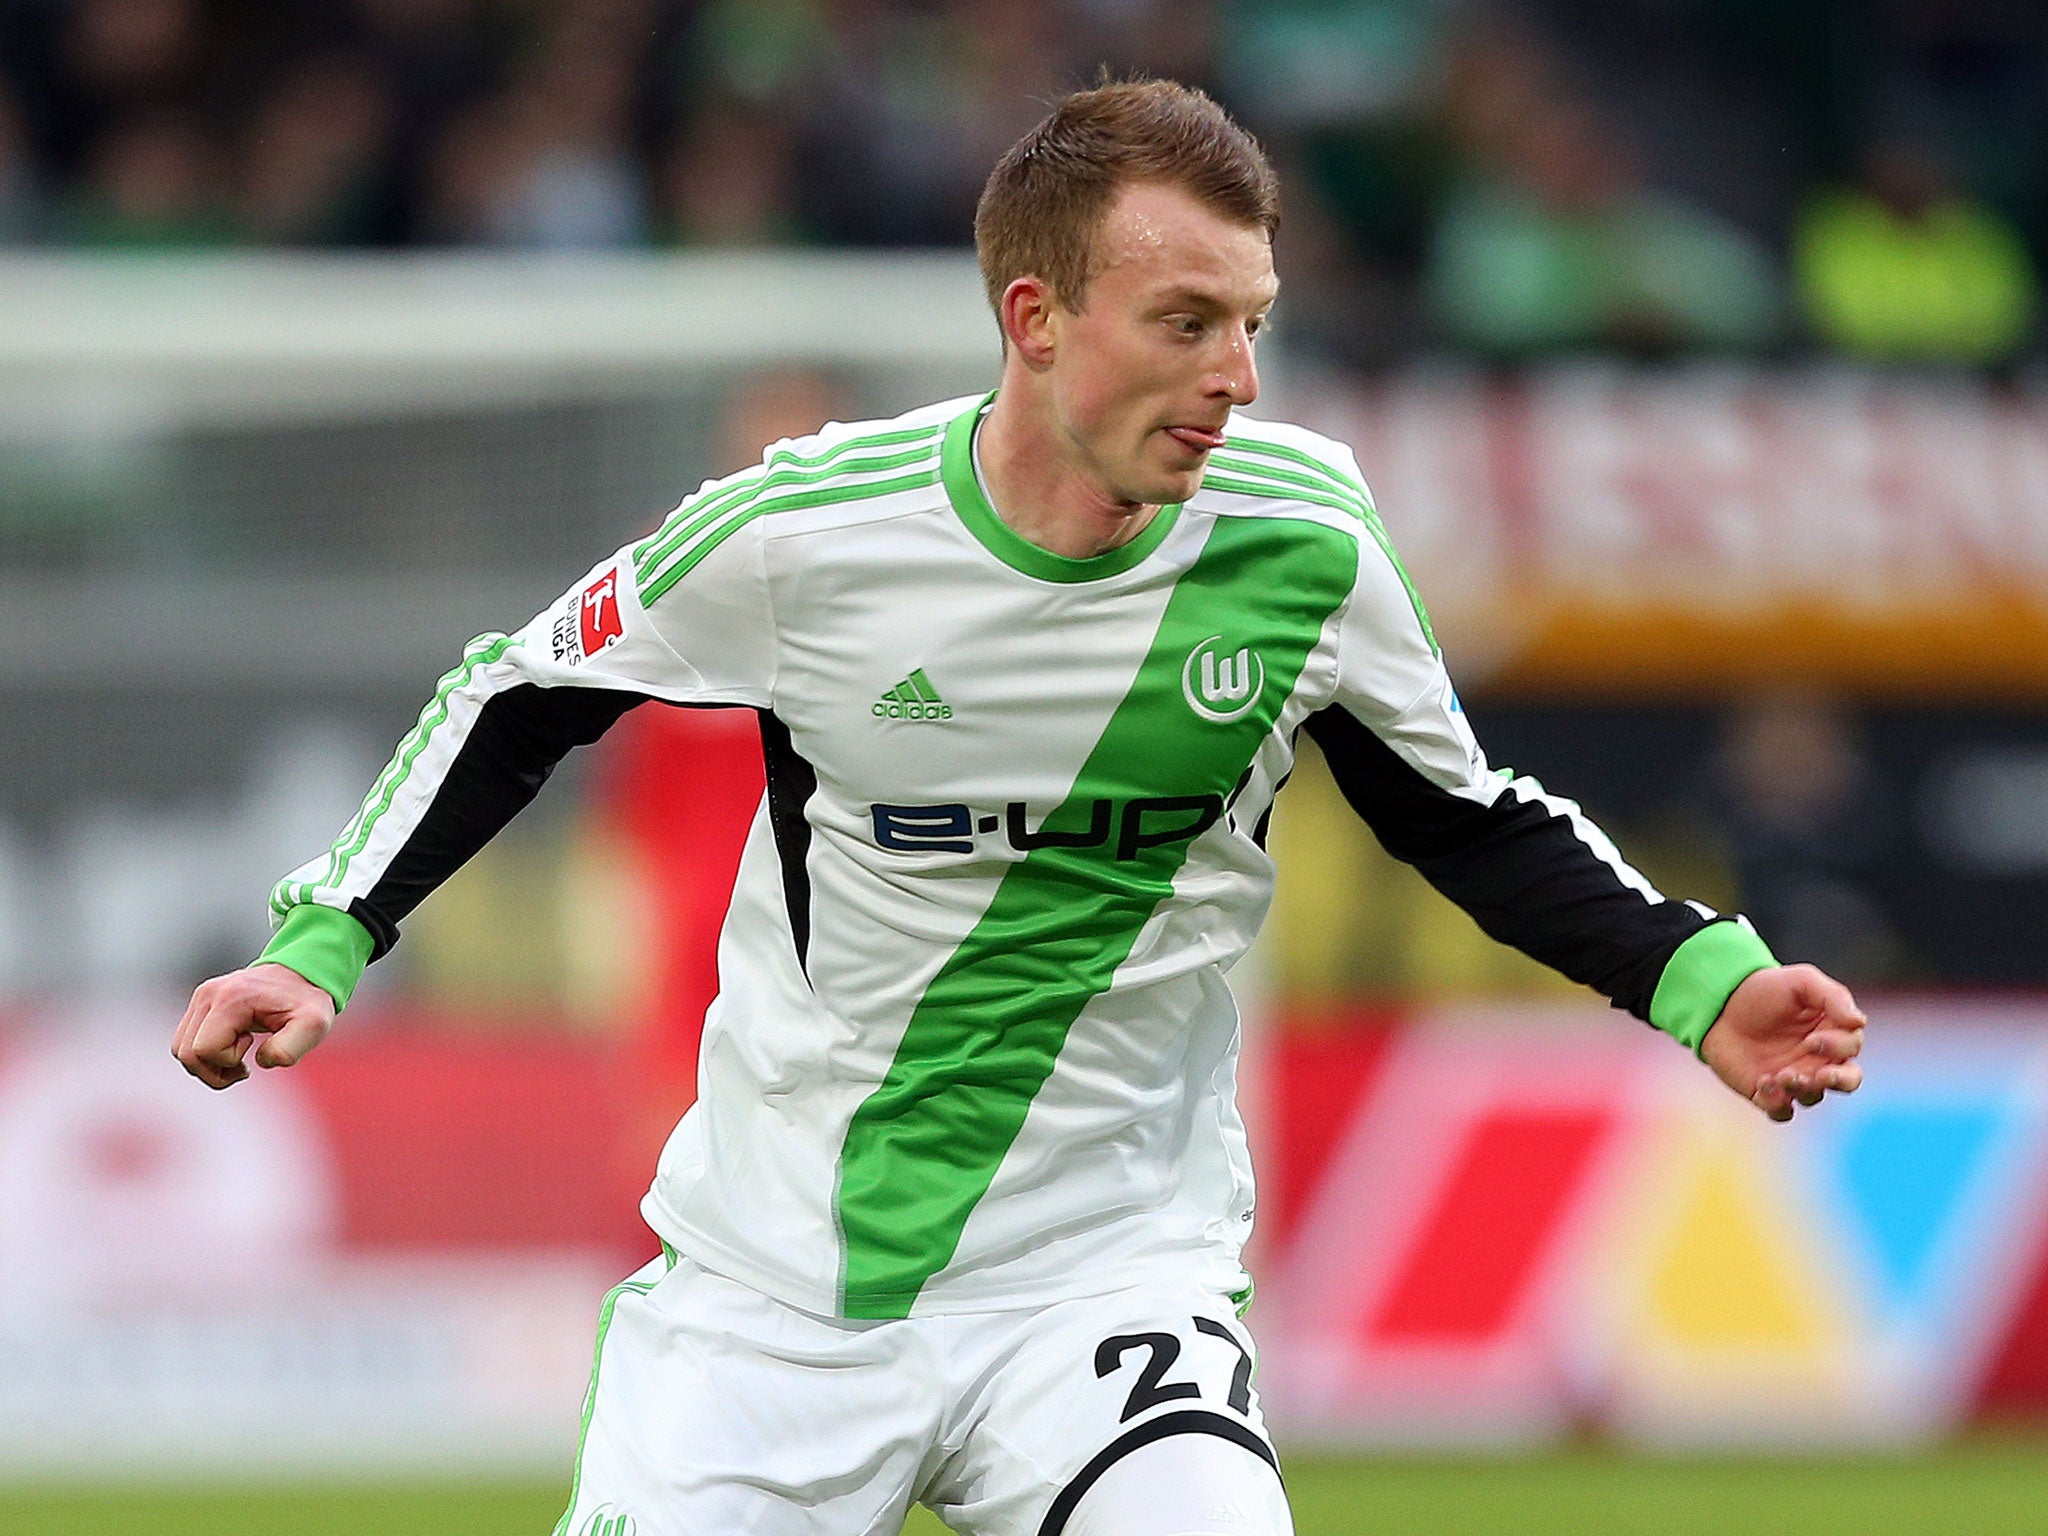 Transfer news: Arsenal keeping an eye on Wolfsburg midfielder Maximilian Arnold with German recruitment likely to continue        Shape    Created with Sketch.                                                                                                        Arsenal: The latest match picturesIndependent football newsletterIndependent football newsletter